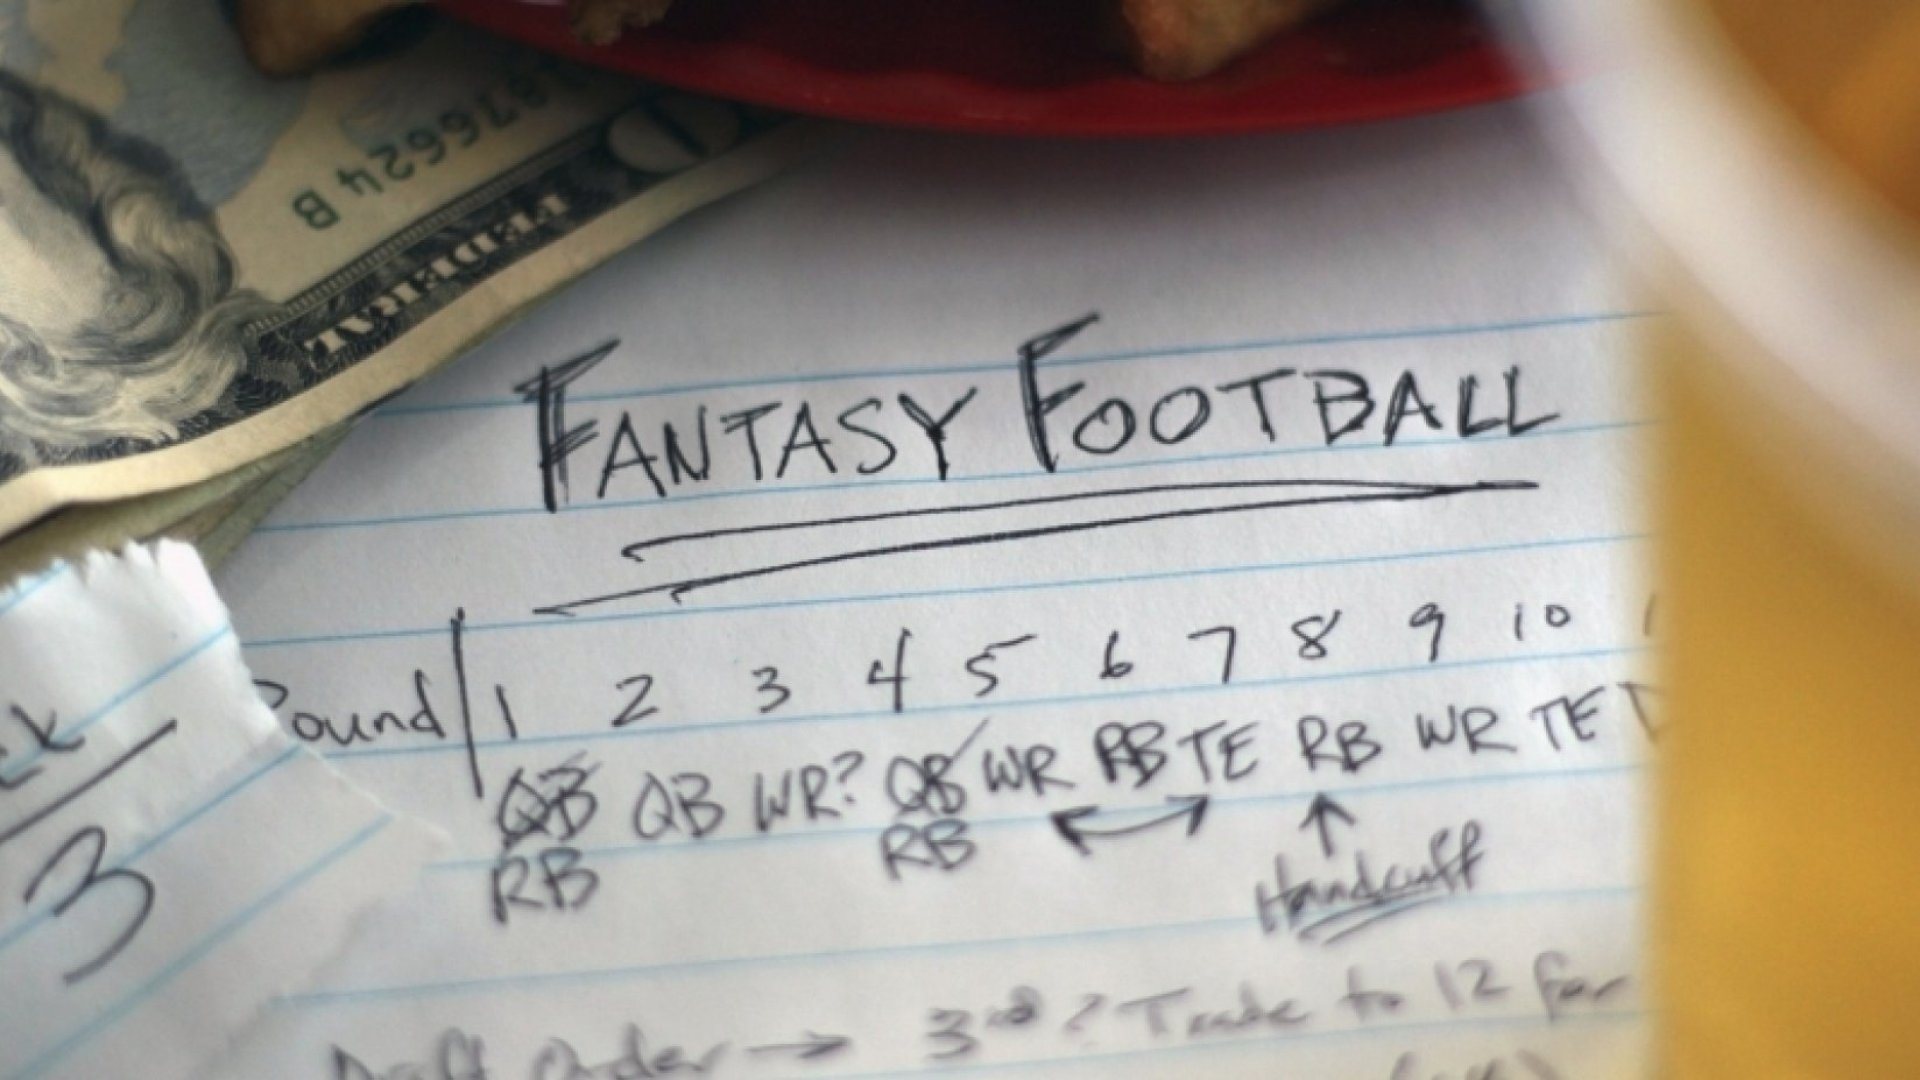 Daily Fantasy Sports Are Illegal in New York, but the IRS Still Gets Its Cut